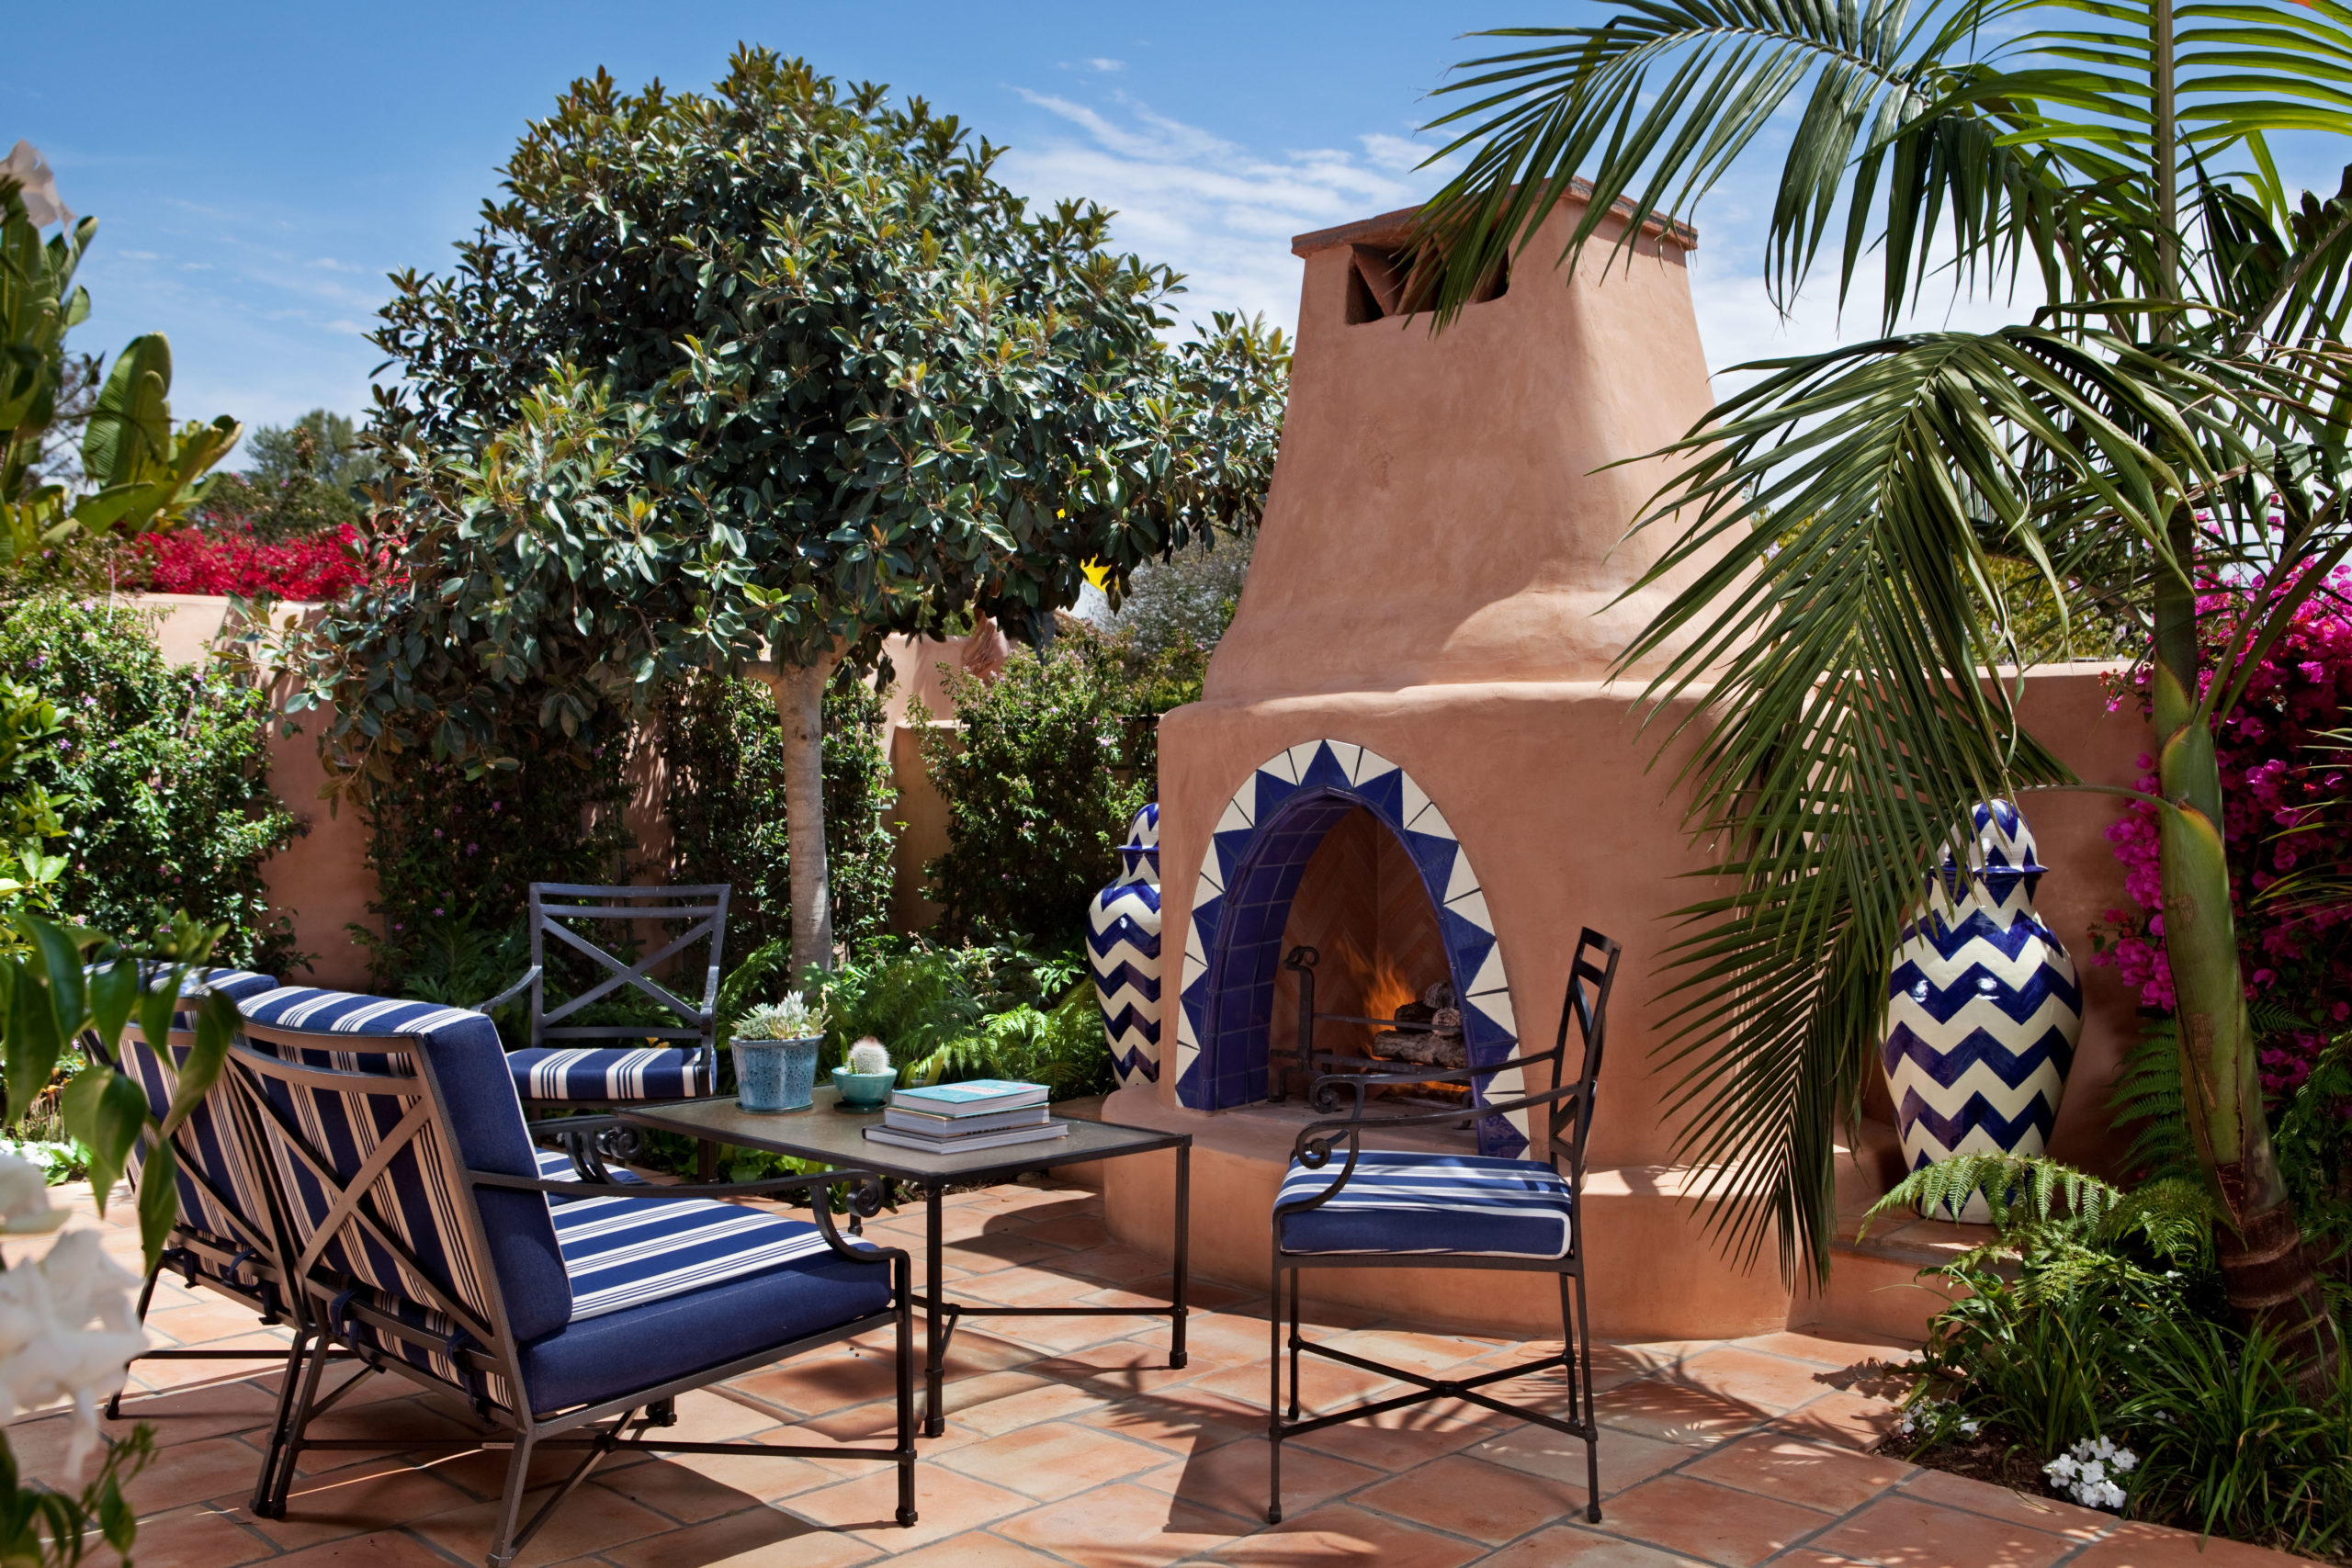 Large outdoor patio with outdoor fireplace, outdoor furniture and lush foliage at luxury San Diego resort, Rancho Valencia